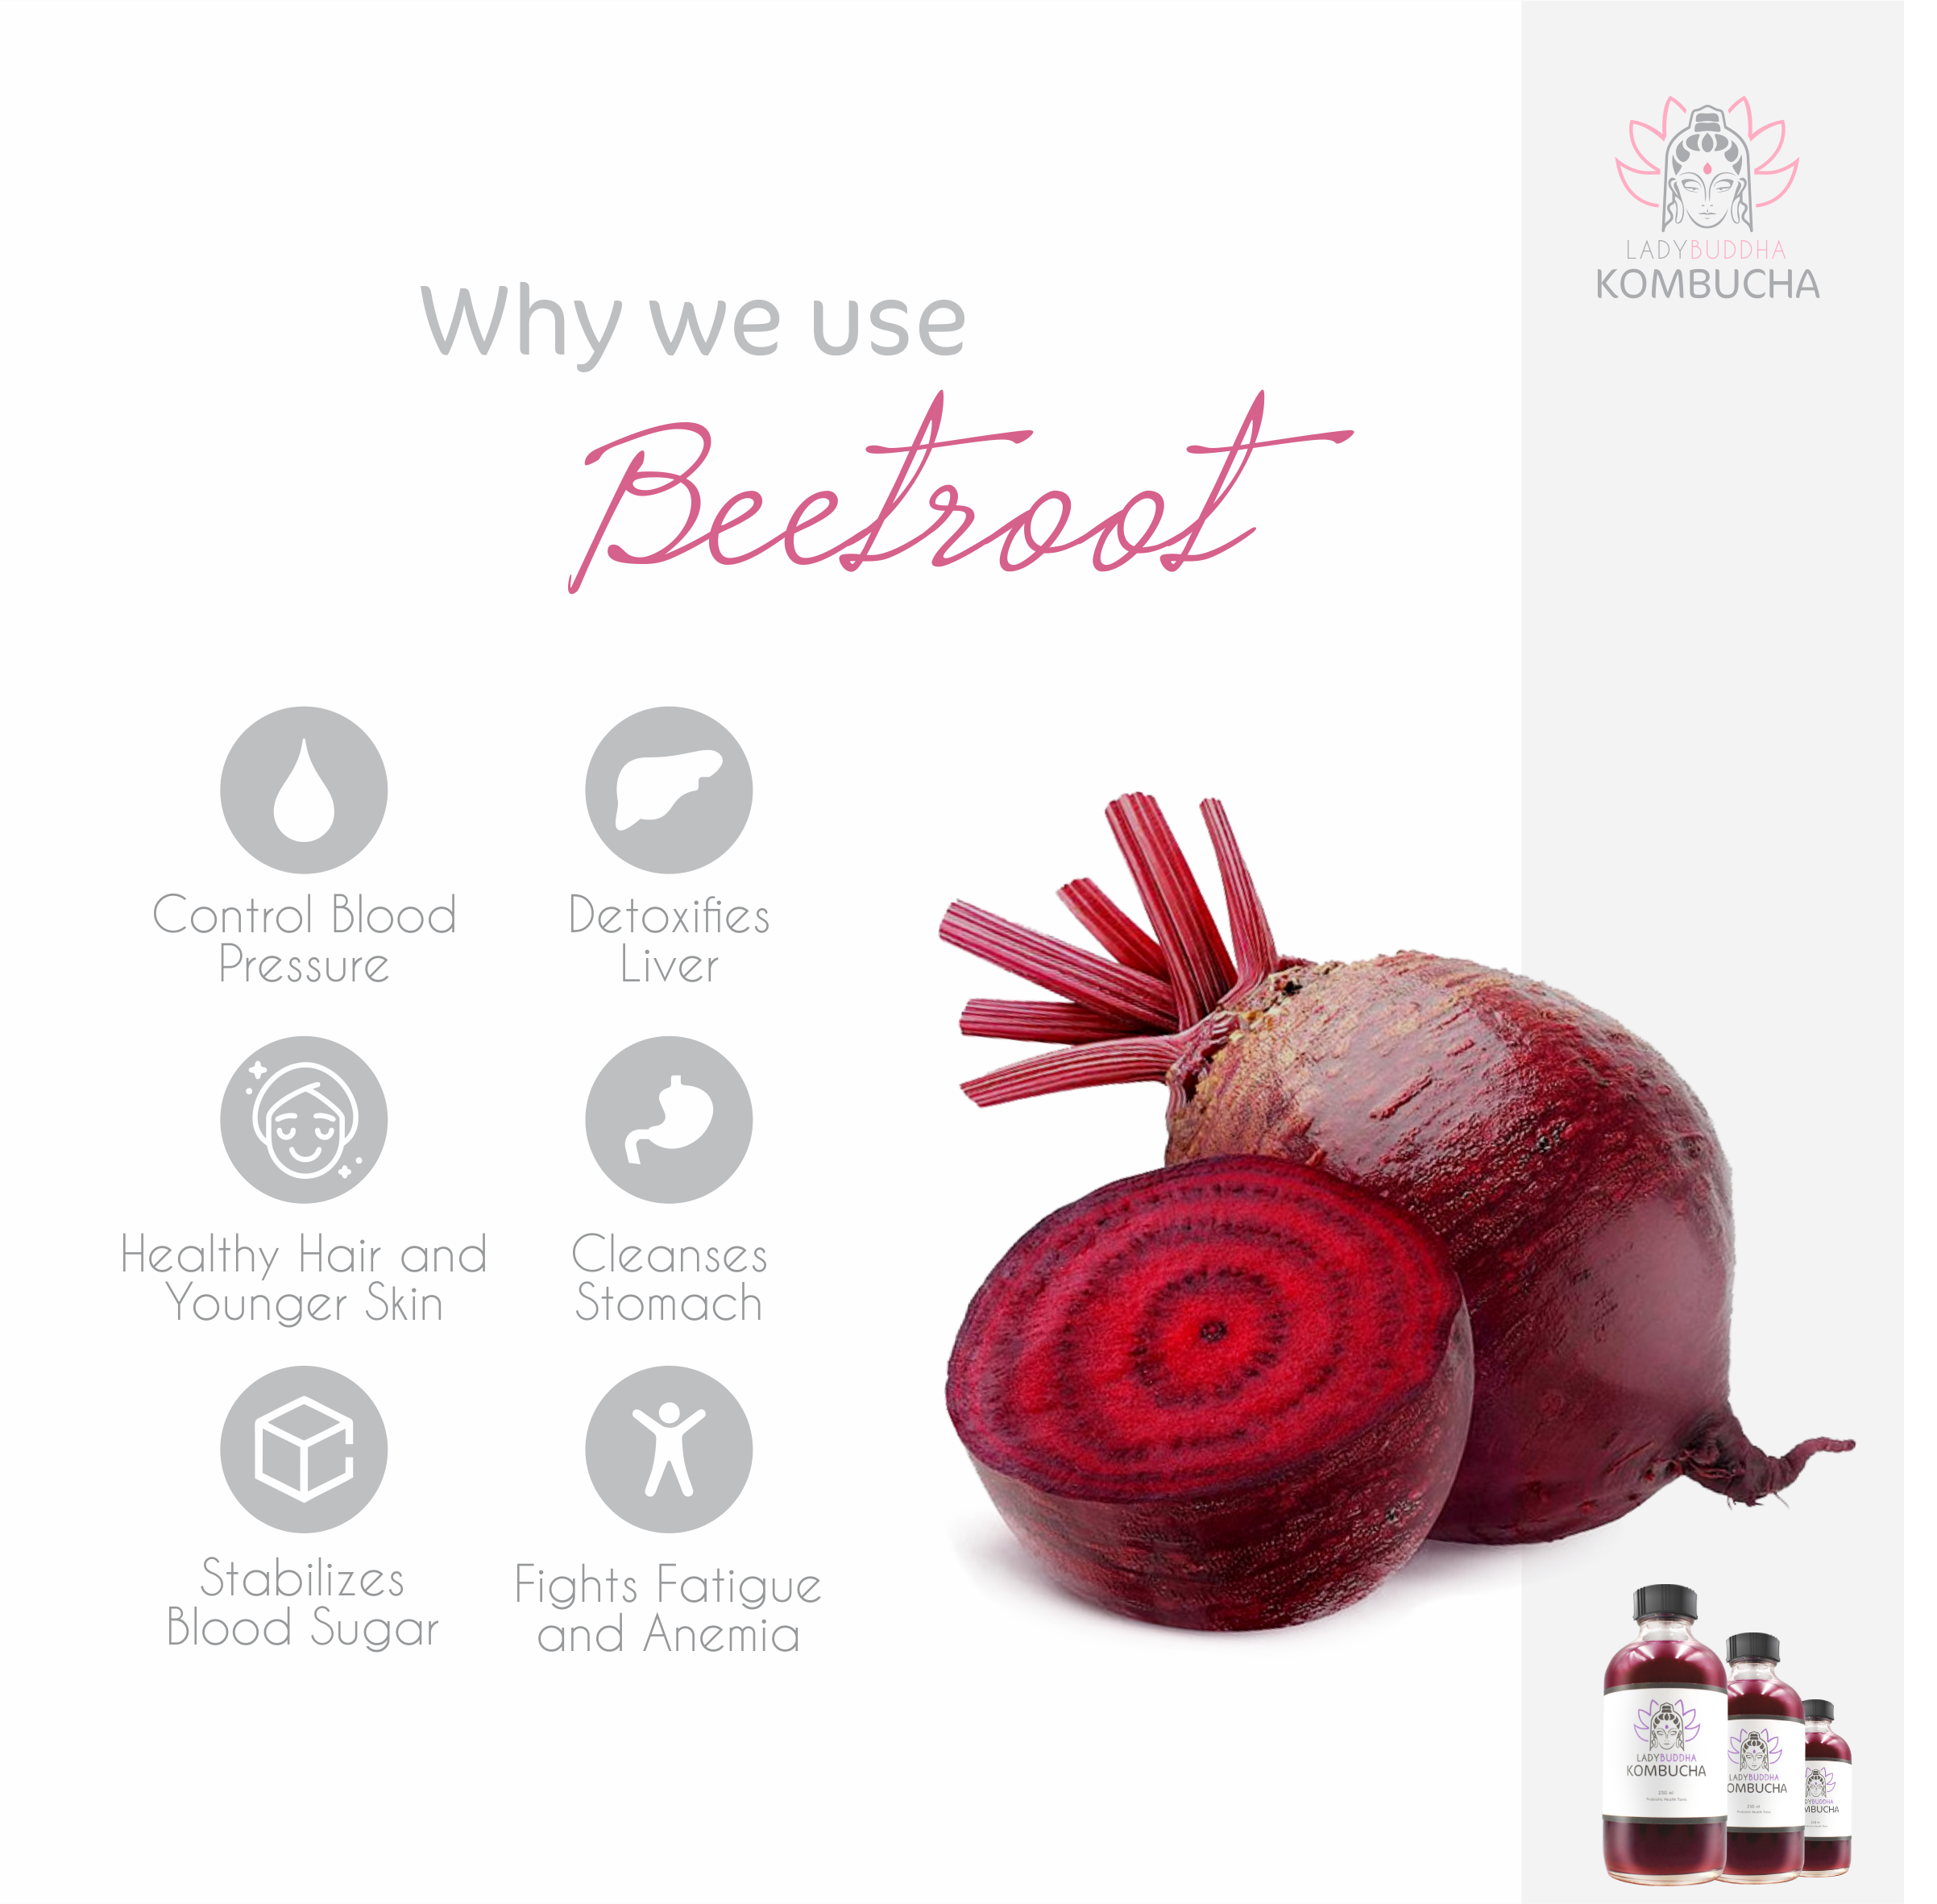 beetroot-health-benefits